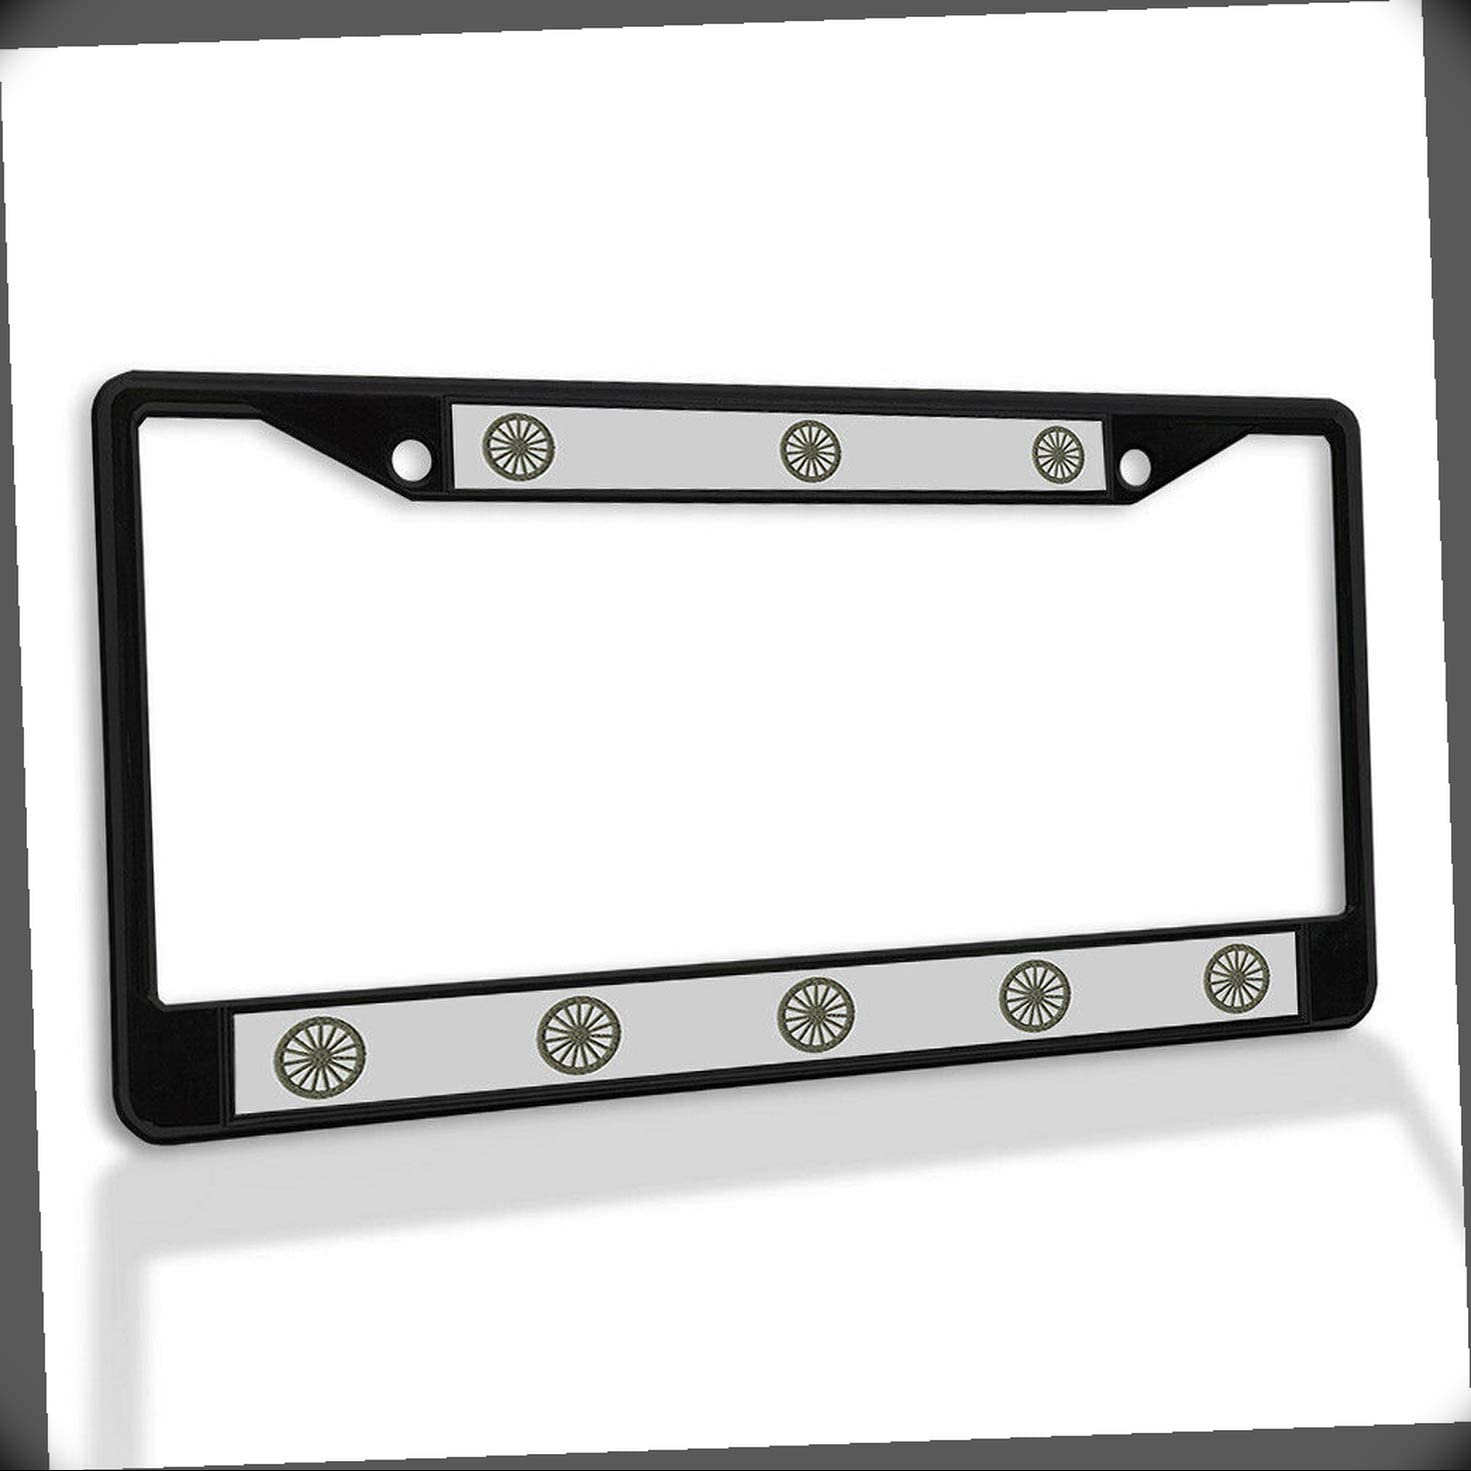 New License Cheap mail order specialty store latest Plate Frame Wagon Wheel Weatherproof Accessories Car